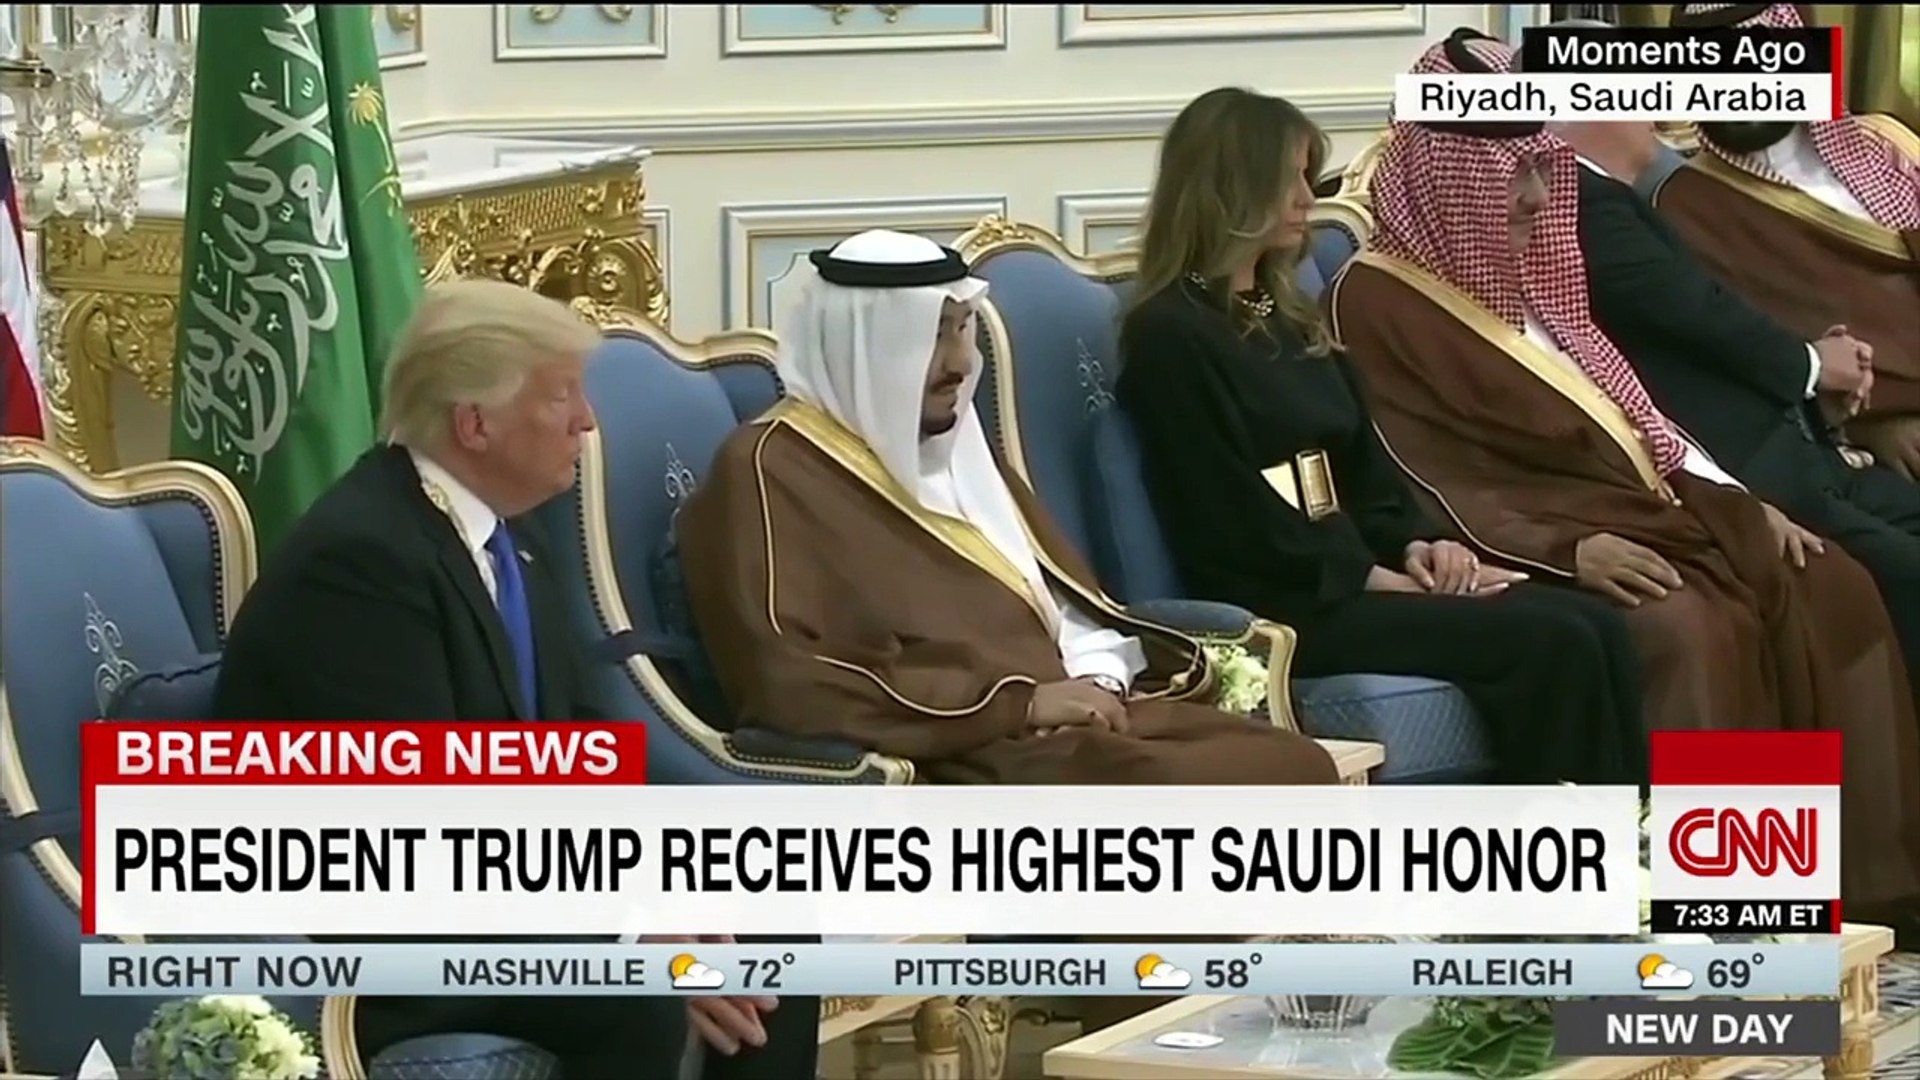 President Trump Honored With Gold Medal From | Saudi Arabian | King At Start Of First Foreign Trip